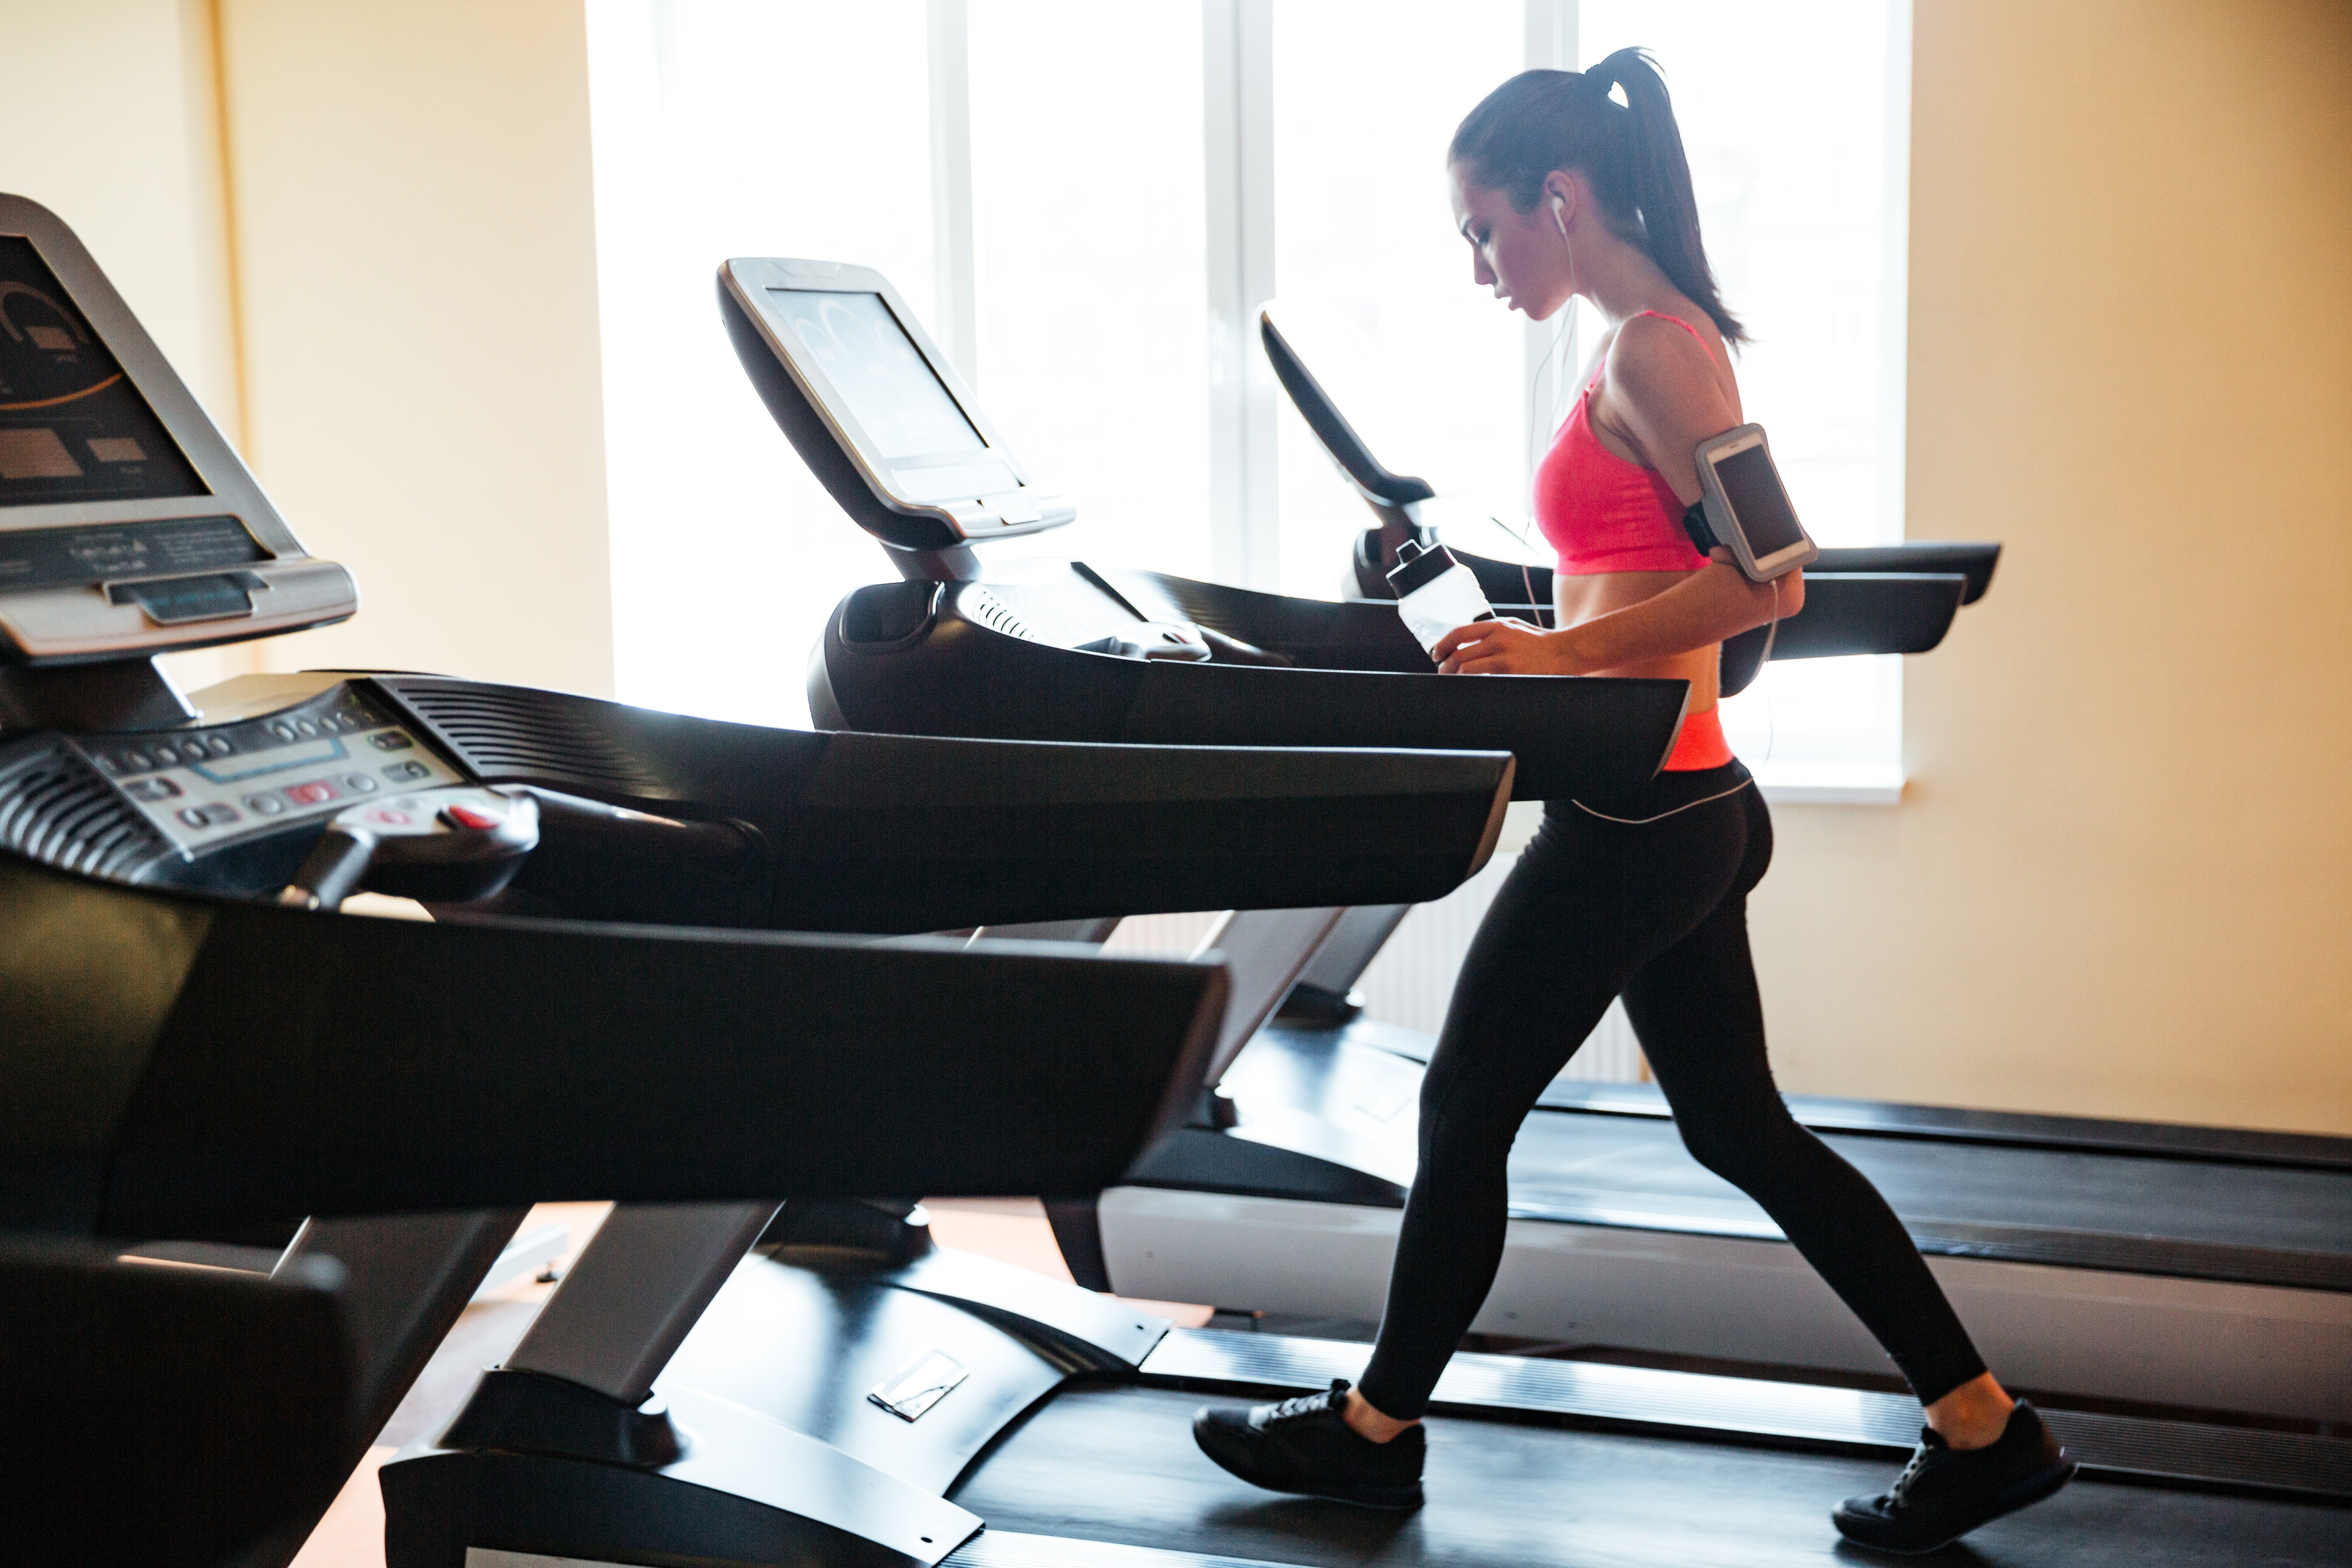 beautiful-young-sportswoman-with-earphones-and-blank-screen-smartphone-using-treadmill-and-drinking-water-in-gym_BKaJICSo.jpg